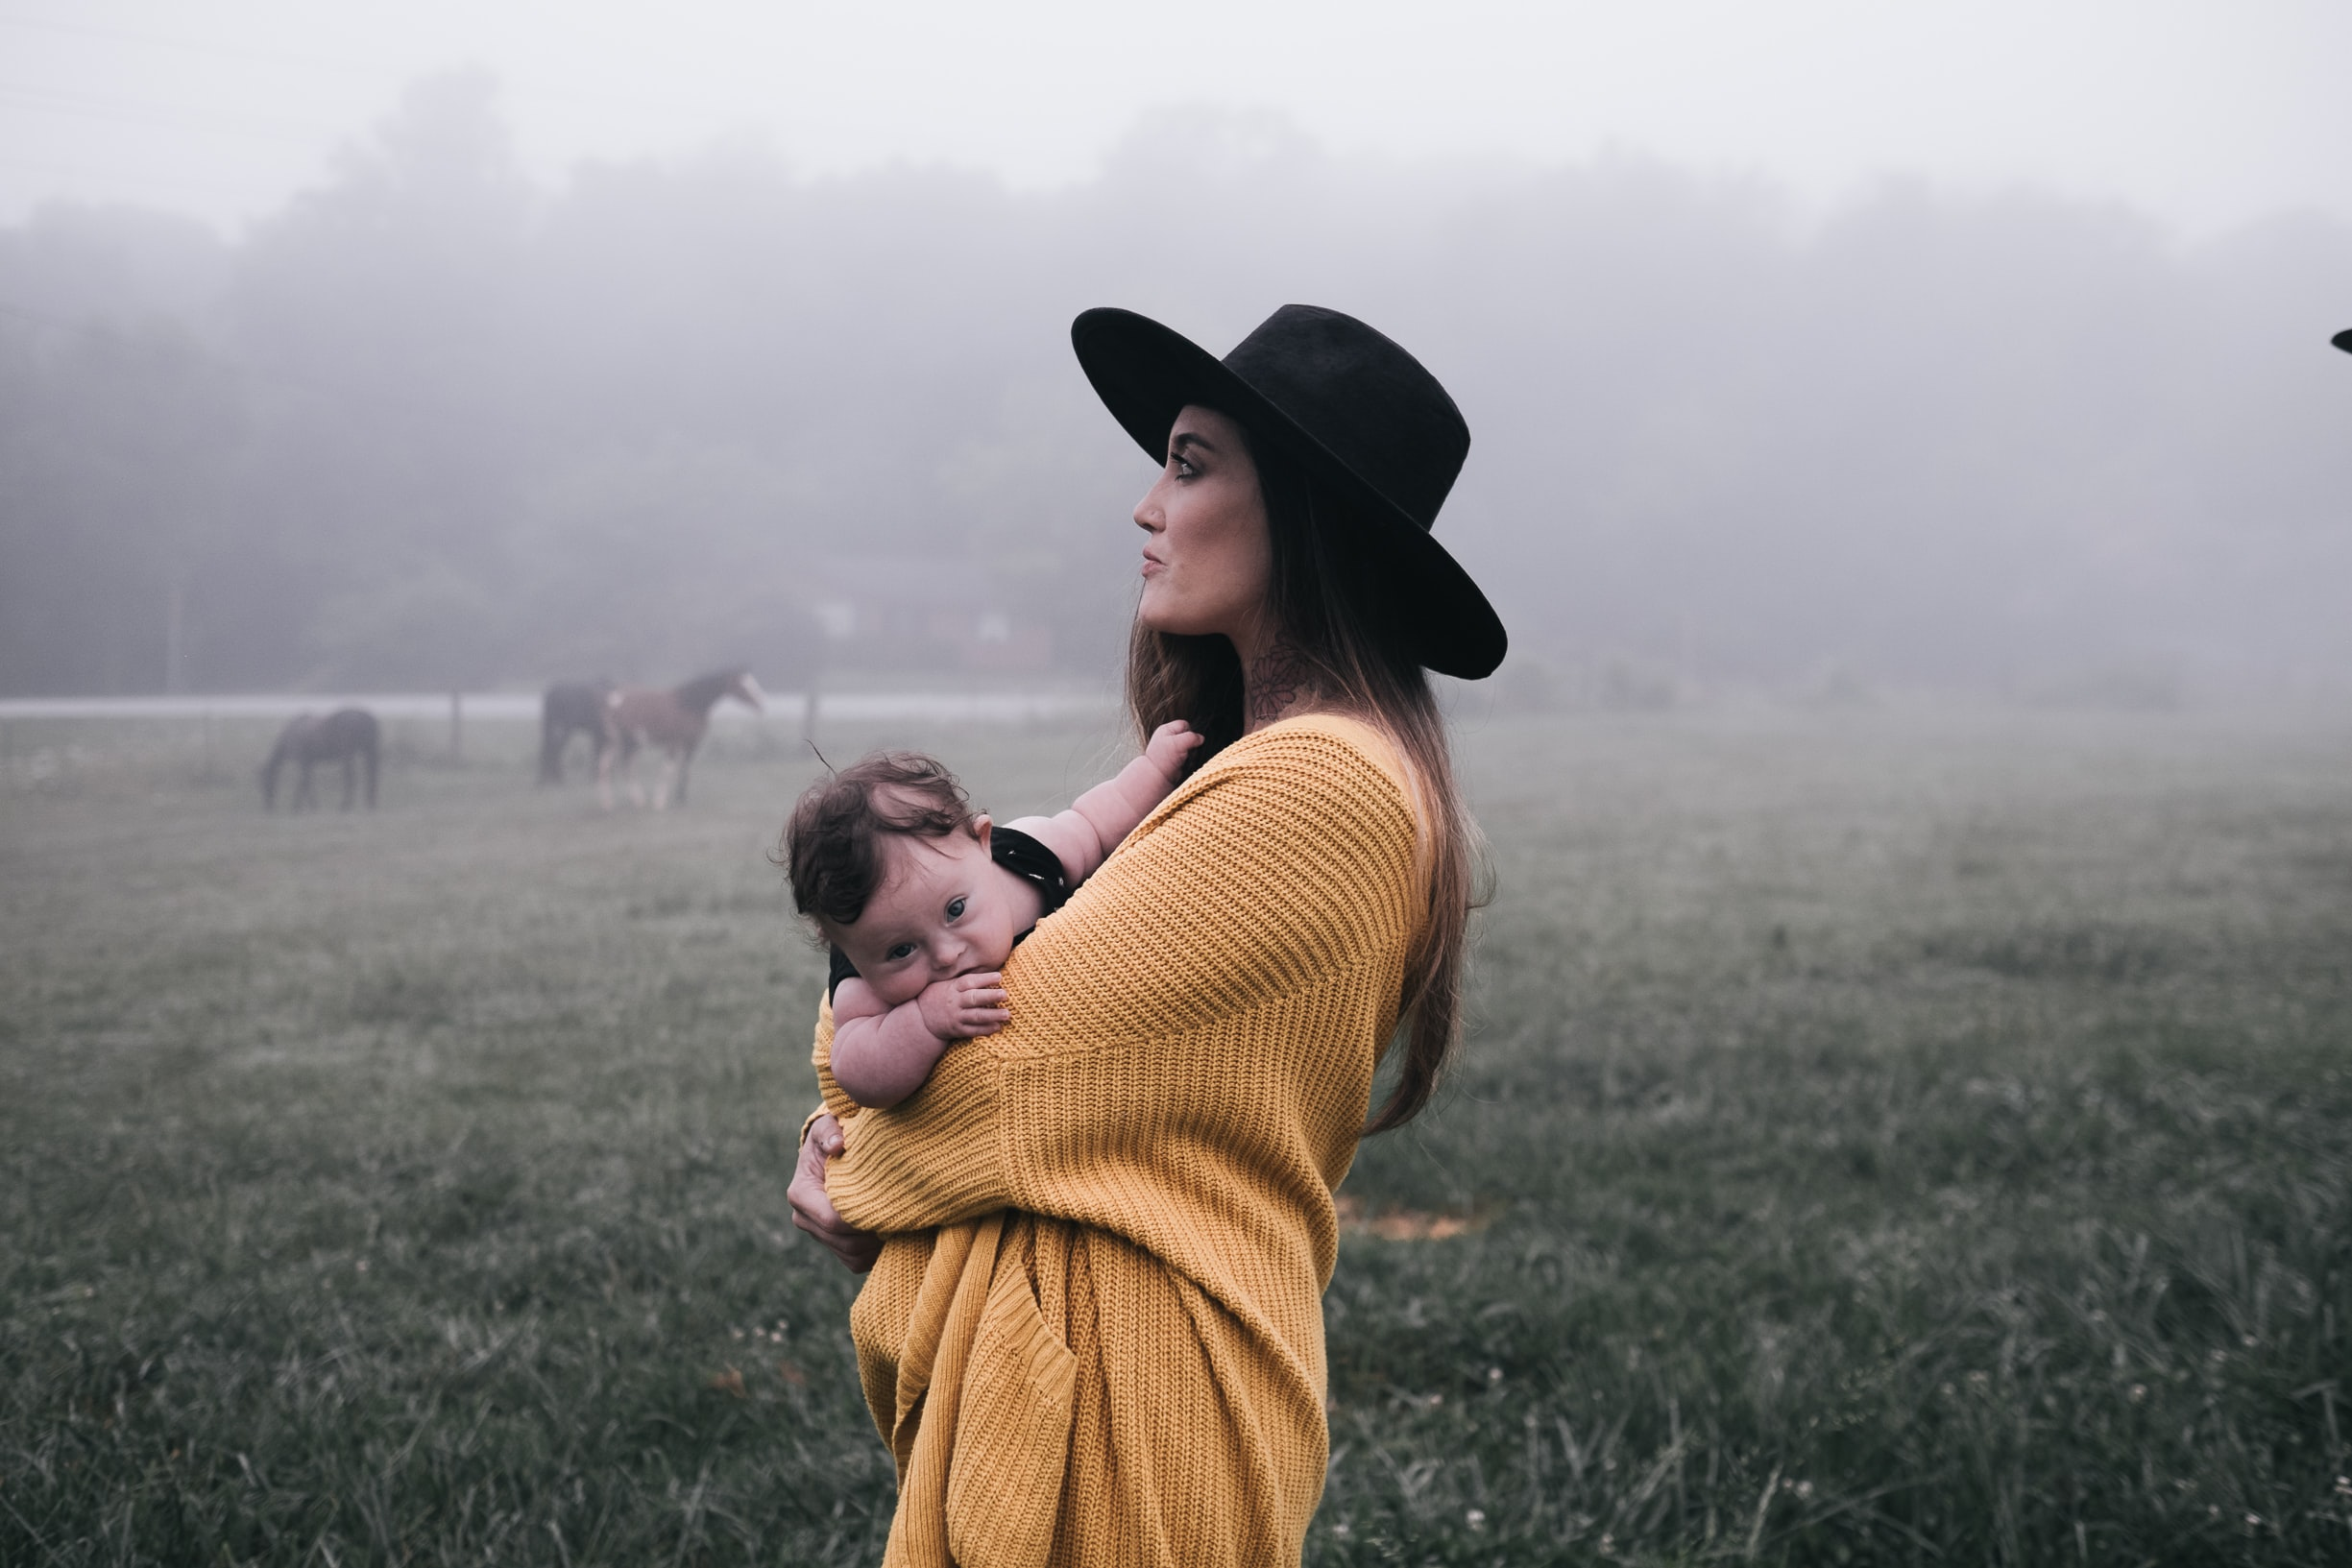 On a misty day, a woman in a big sweater and black hat holds a child in a field of horses